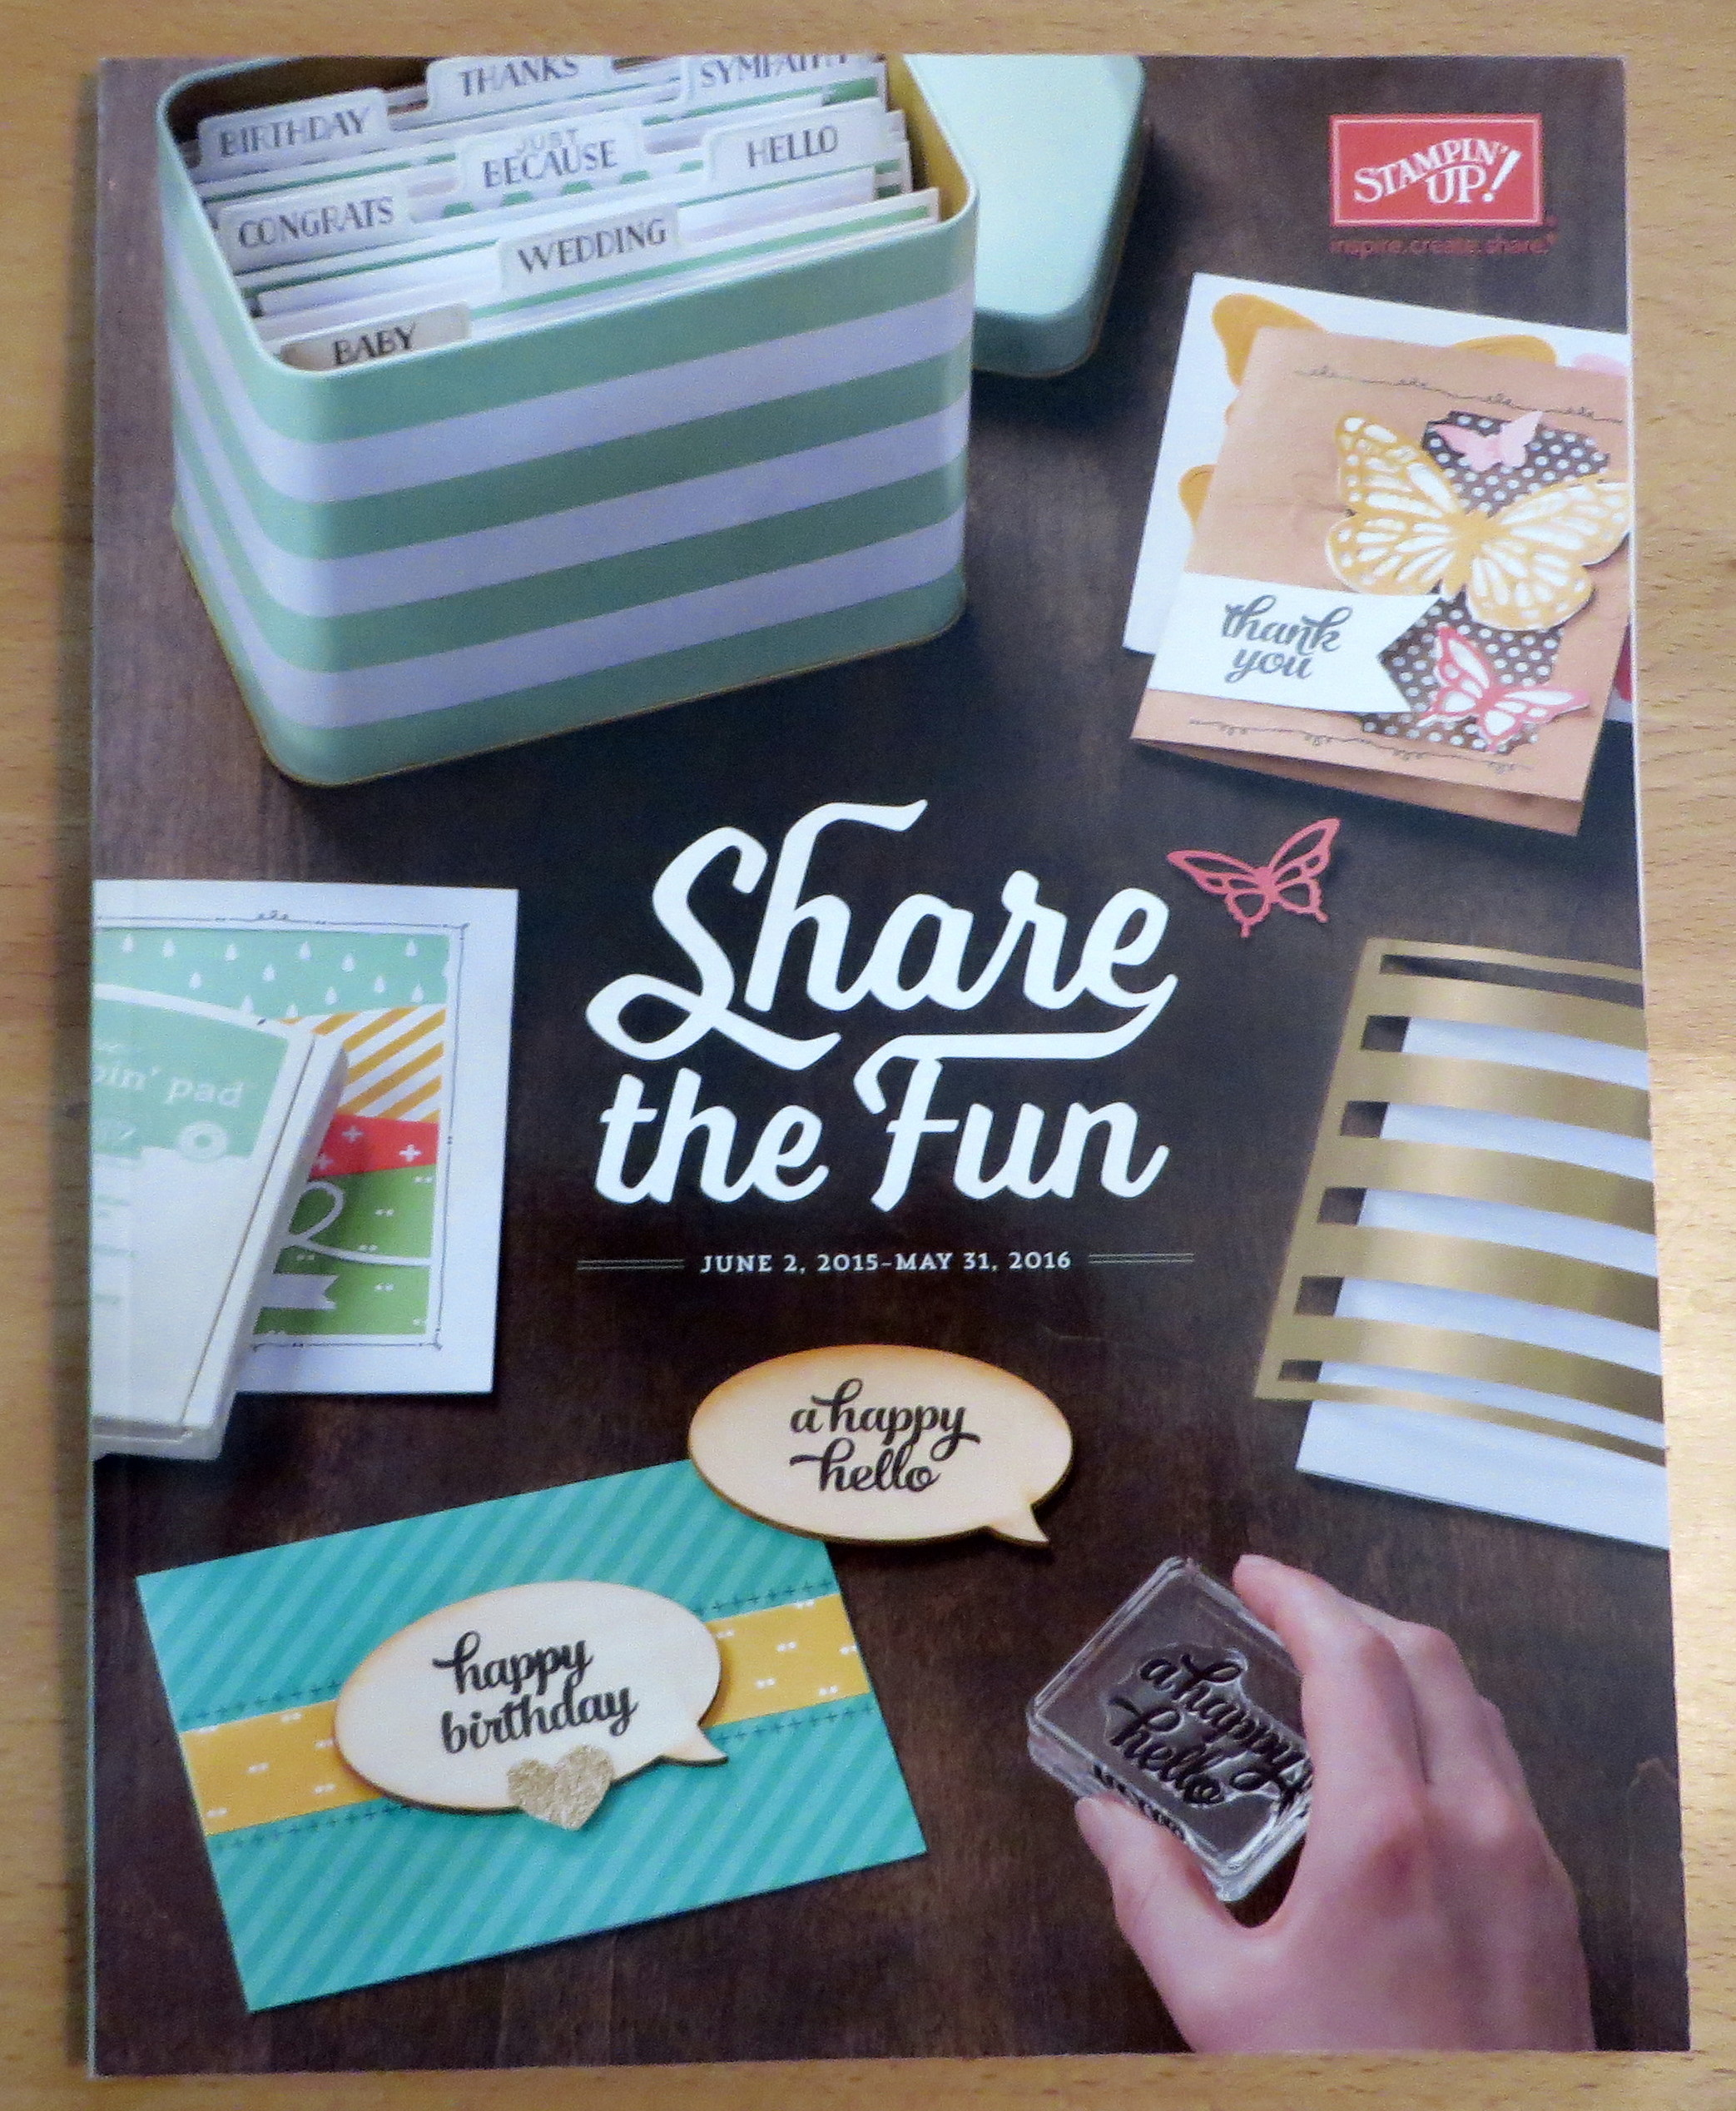 New Stampin' Up! Catalog 2015-16